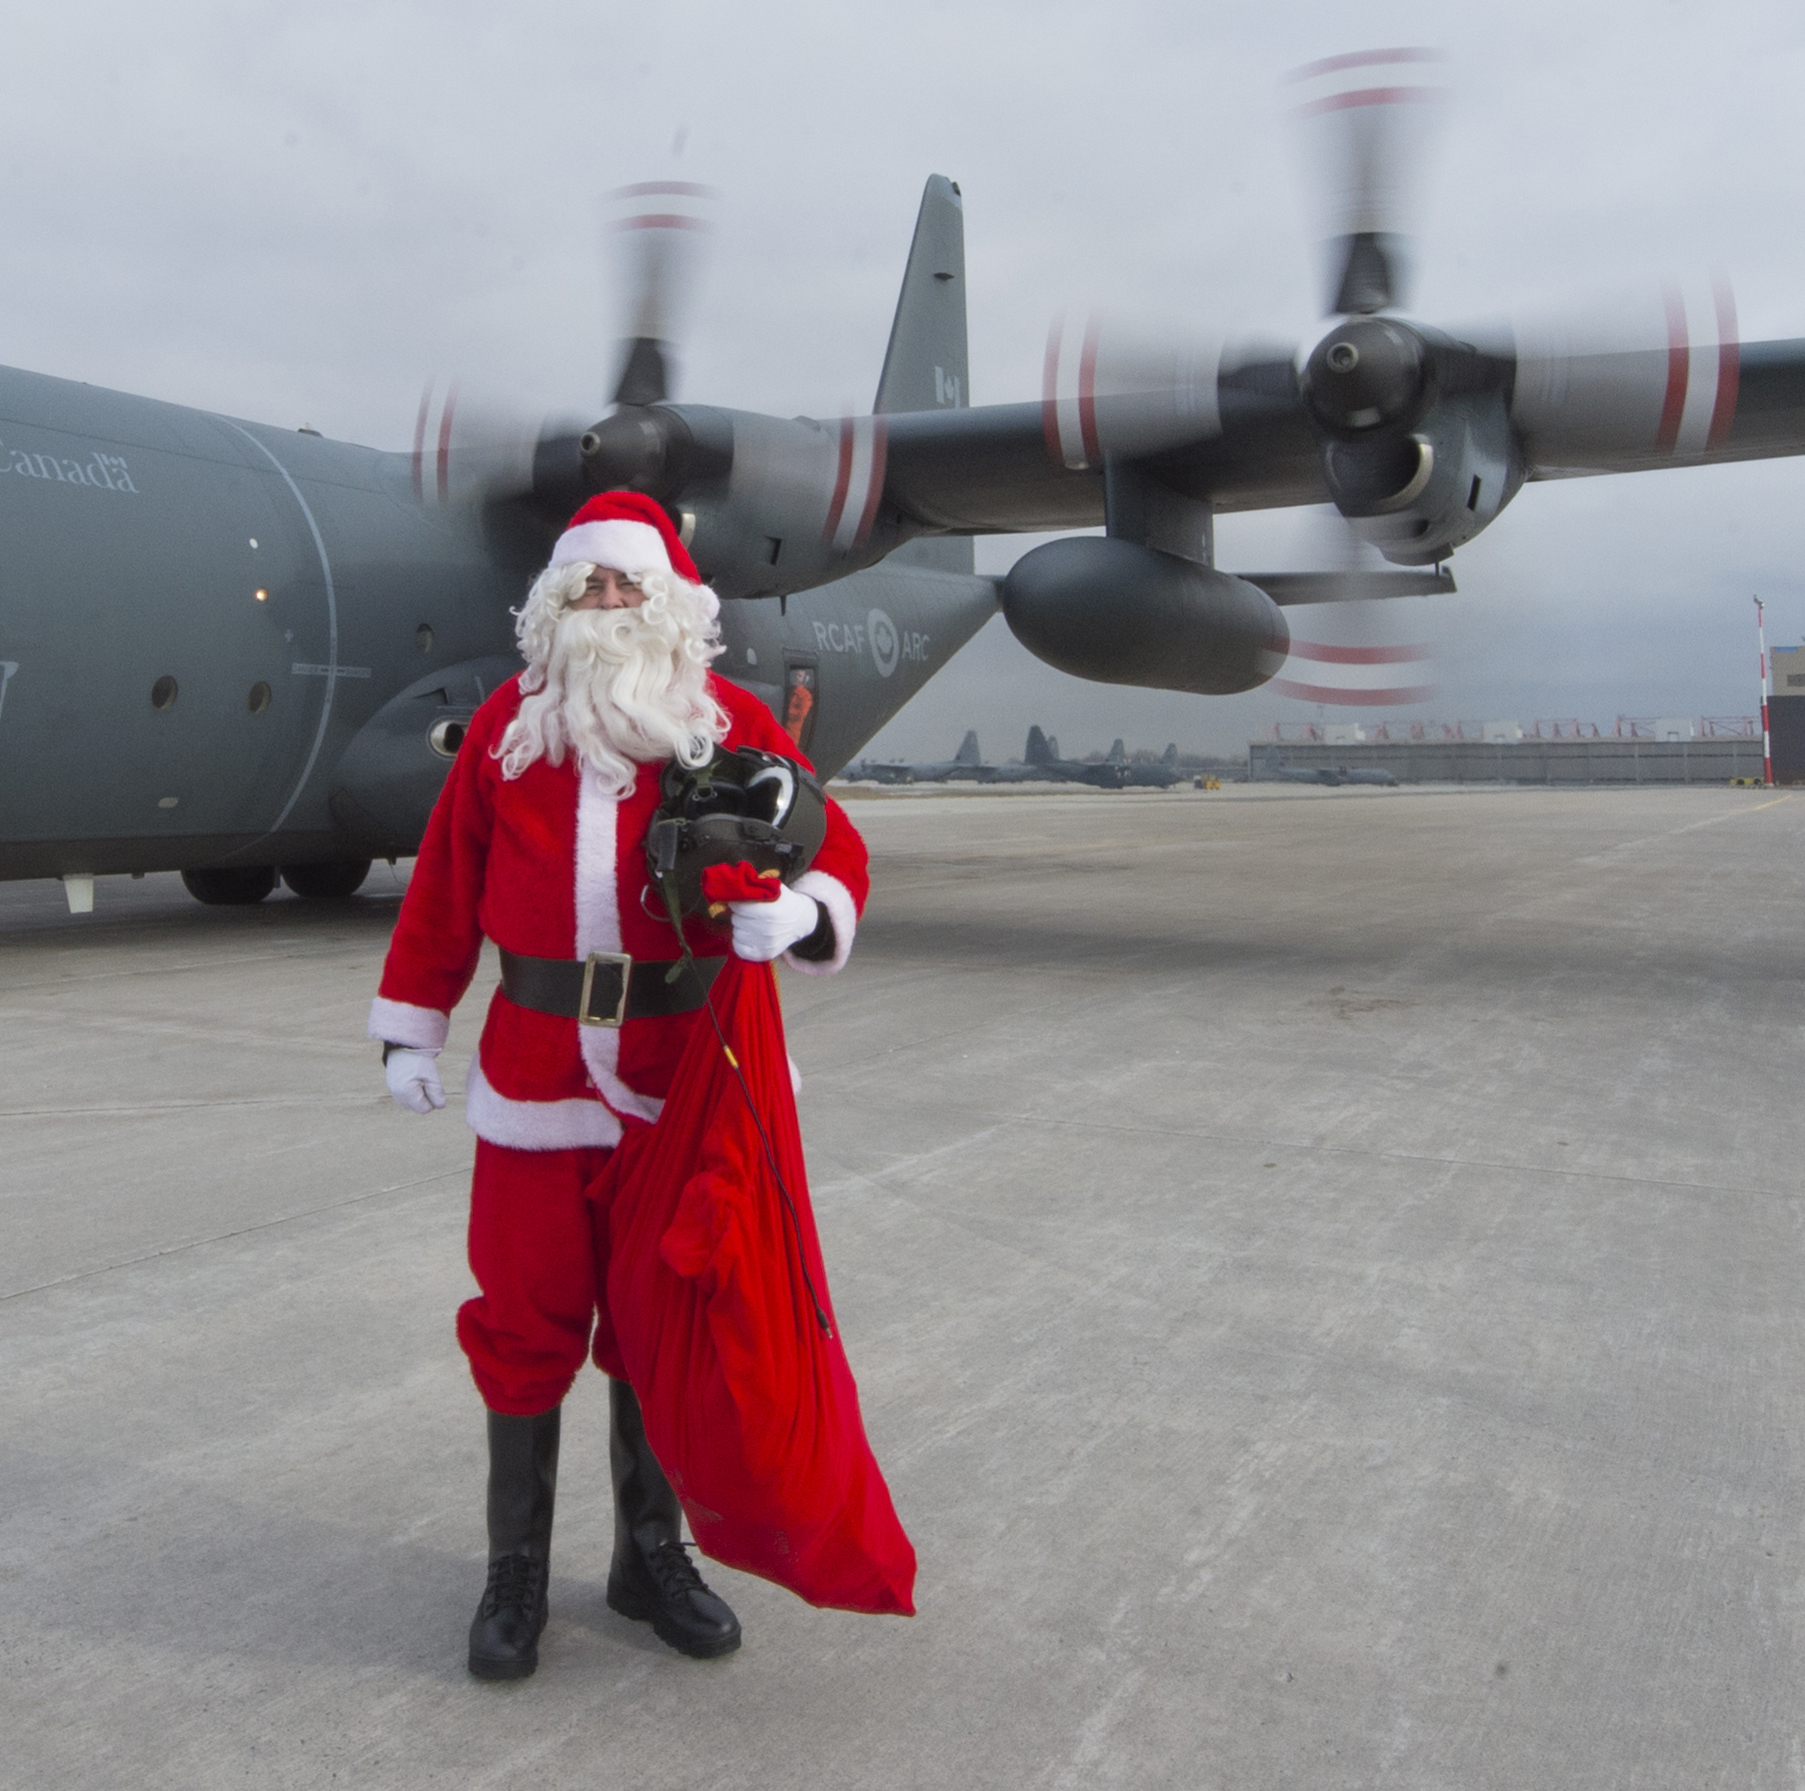 On December 5, 2018, Santa Claus went for a familiarization flight onboard a CC-130H Hercules from 424 Transport and Rescue Squadron. PHOTO: Leading Seaman Dan Bard, TN09-2018-0441-168